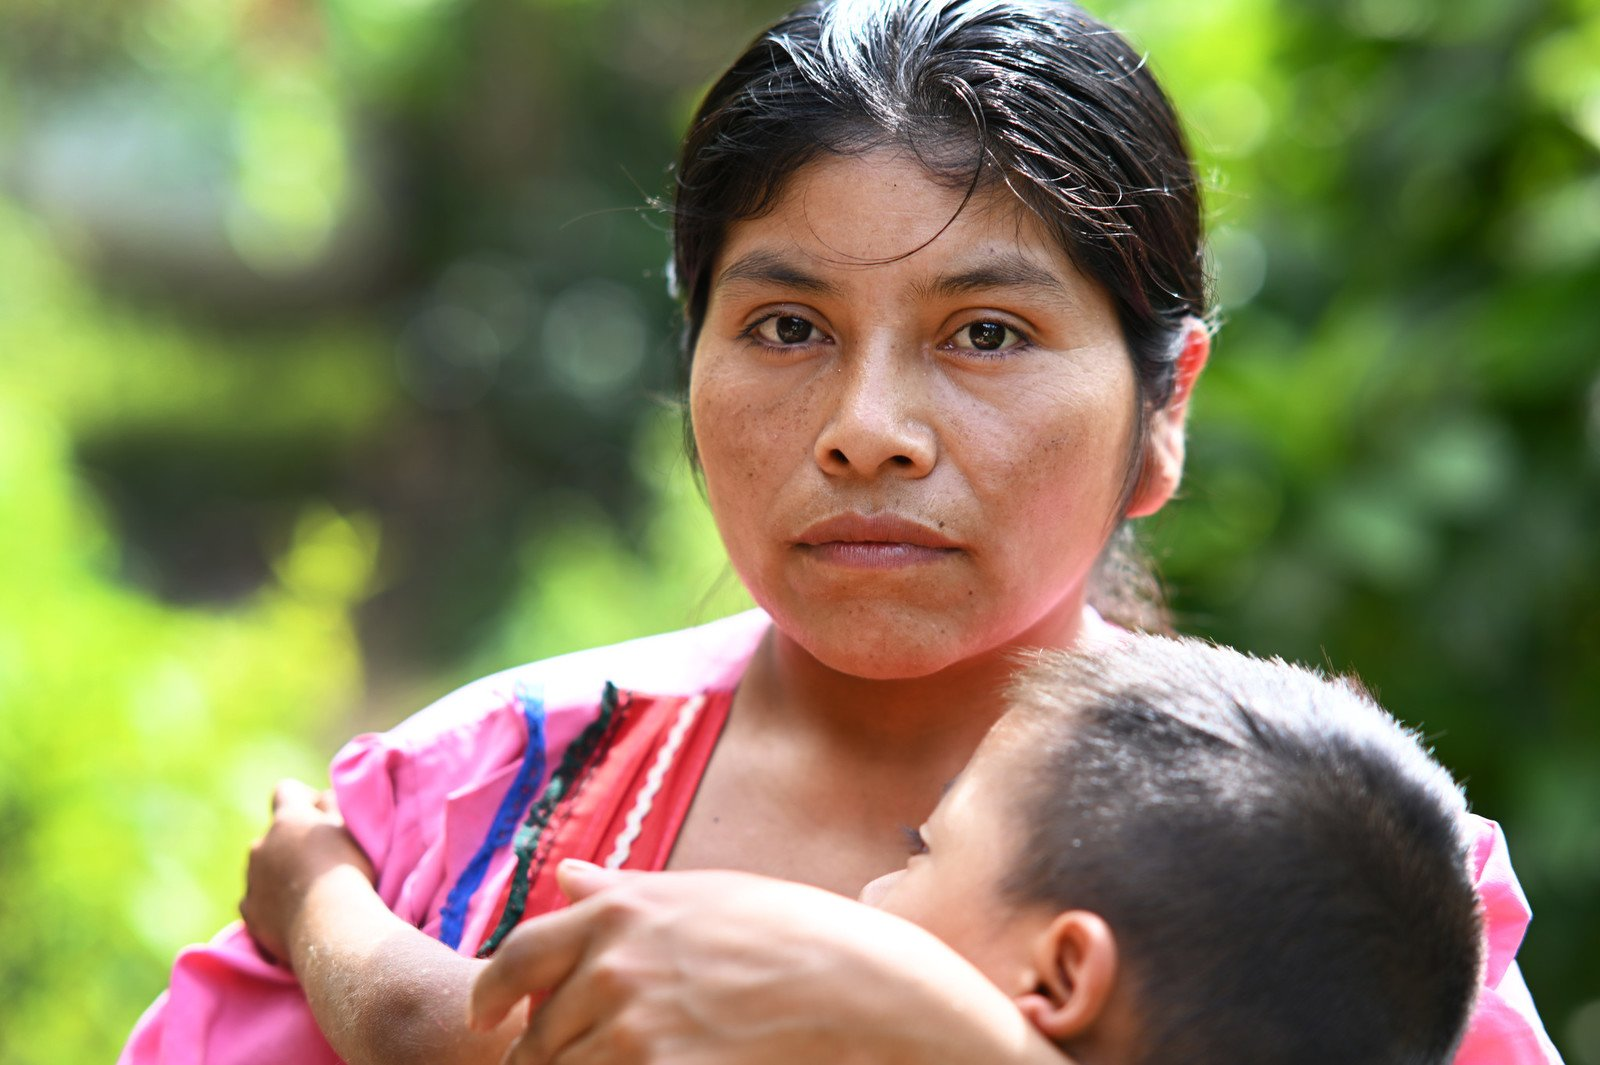 'We spent almost eight days enduring starvation', Mariana said. In the community of Naranjo in Guatemala, climate change is leaving people with nothing to eat. With no other option, Mariana's husband and her 20-year-old son walked for 20 days towards the United States in search of work. They had to sell their land and take on debt to pay for the journey. When her husband sends money back, some of it is used to pay off the debt and the rest goes towards the family's survival. (Photo: Valerie Caamaño / Oxfam)